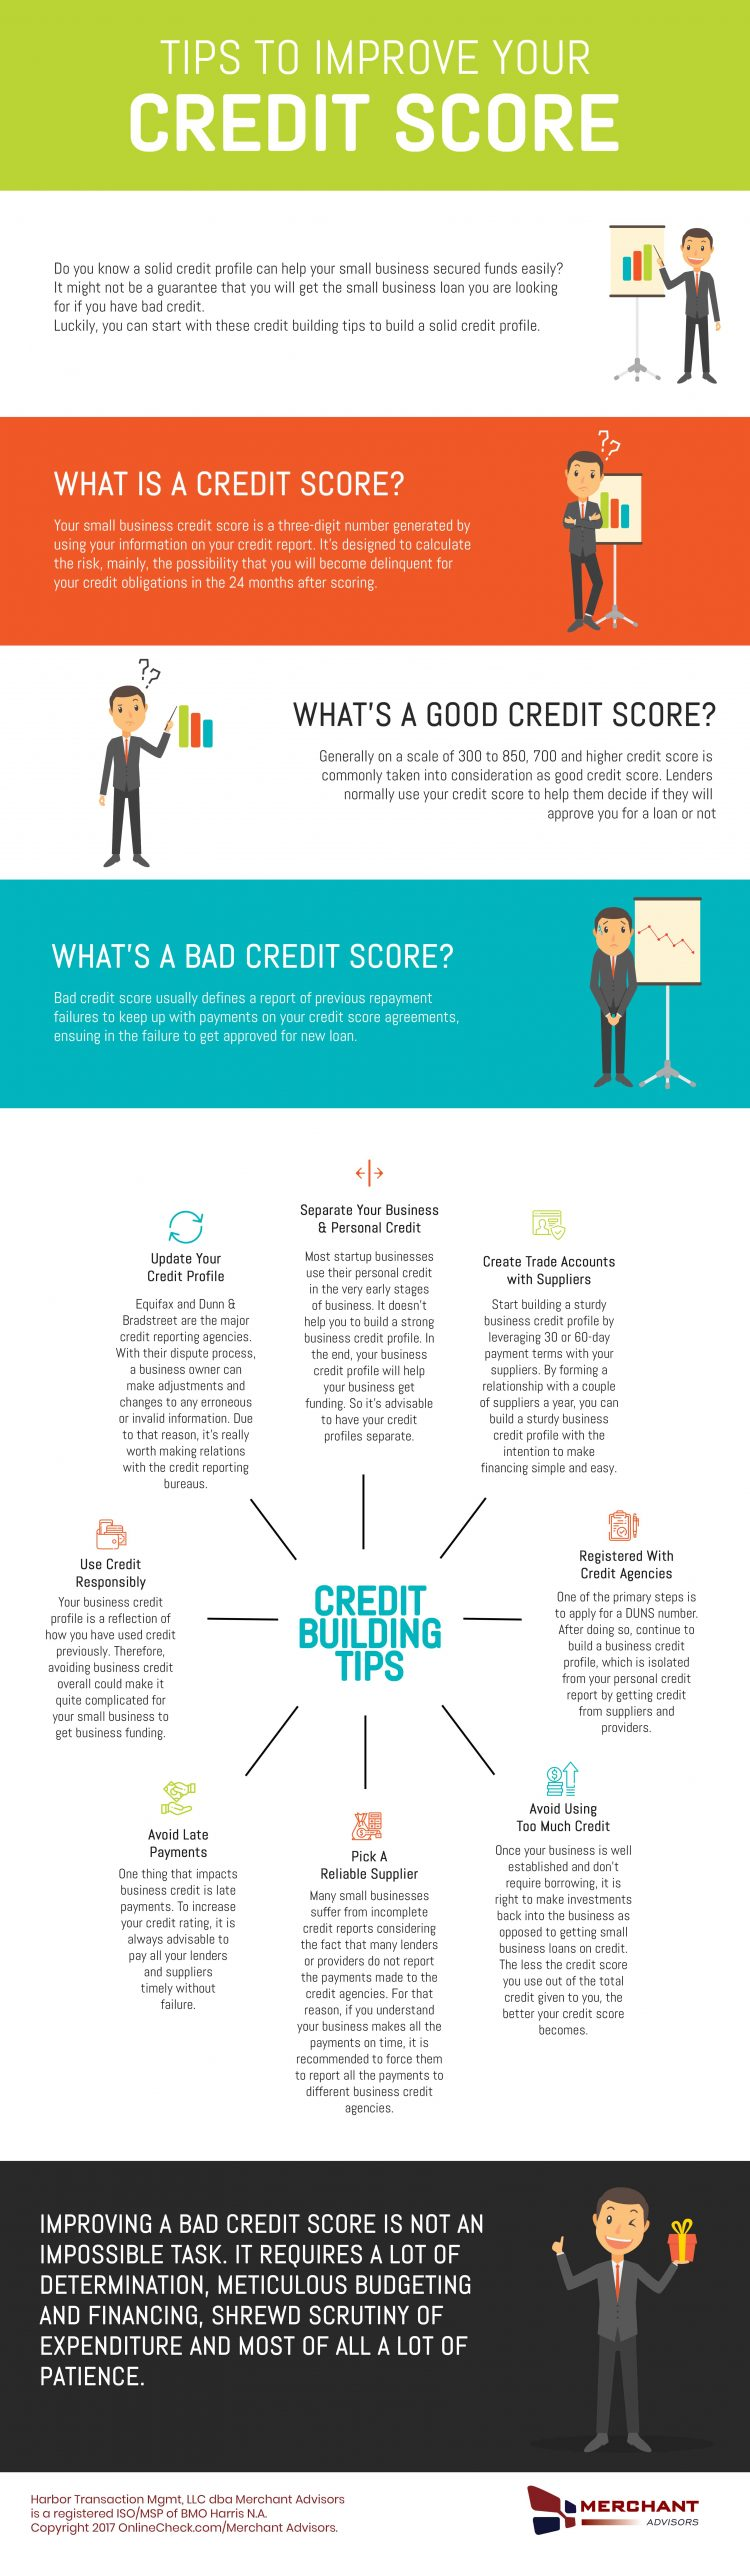 Bad Credit Score: Credit Building Tips To Raise Your FICO Score